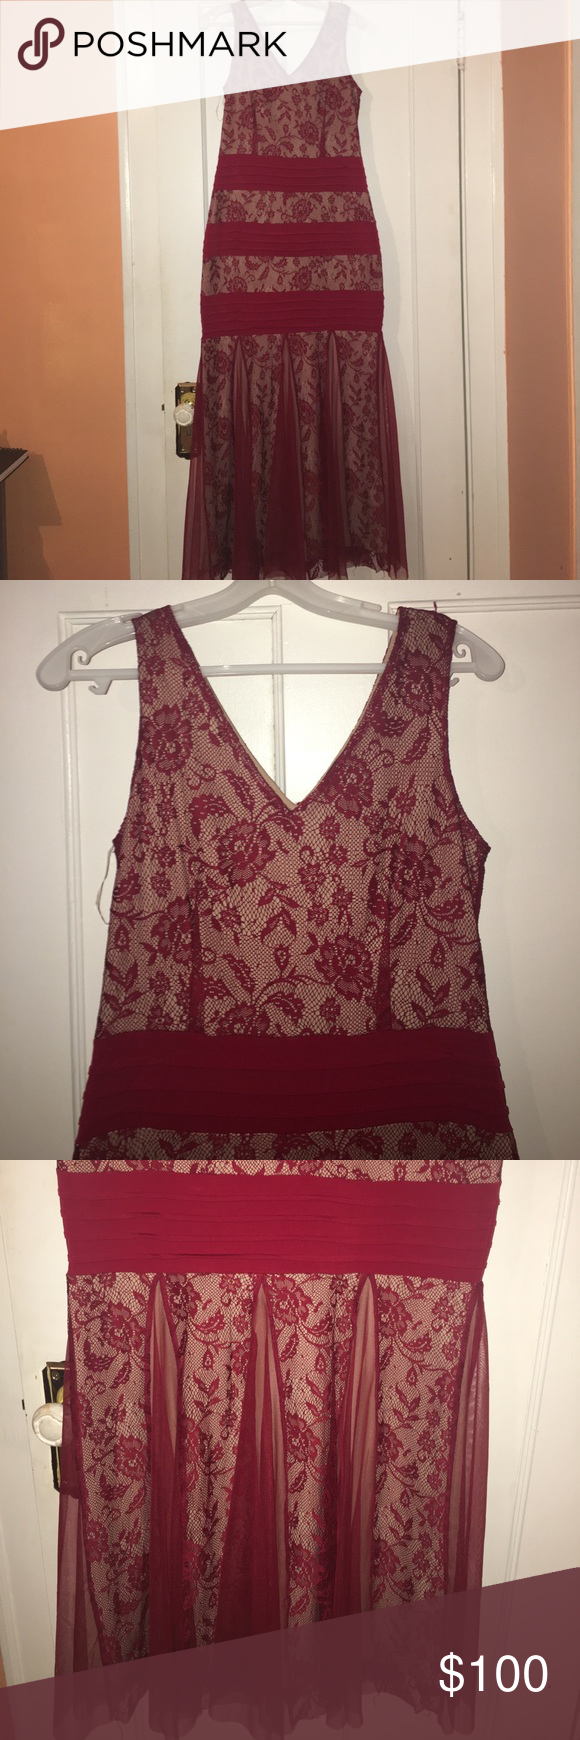 NEVER WORN BRAND NEW RED LACE EVENING GOWN! Beautiful red evening gown. The red lace had nude colored slip behind it. Goes into a mermaid style bottom provides great coverage so you can wear a normal bra. Fits well can stretch, tags still on never worn !!! Material is stretchy!!!! Best offer will work too candalite Dresses Prom